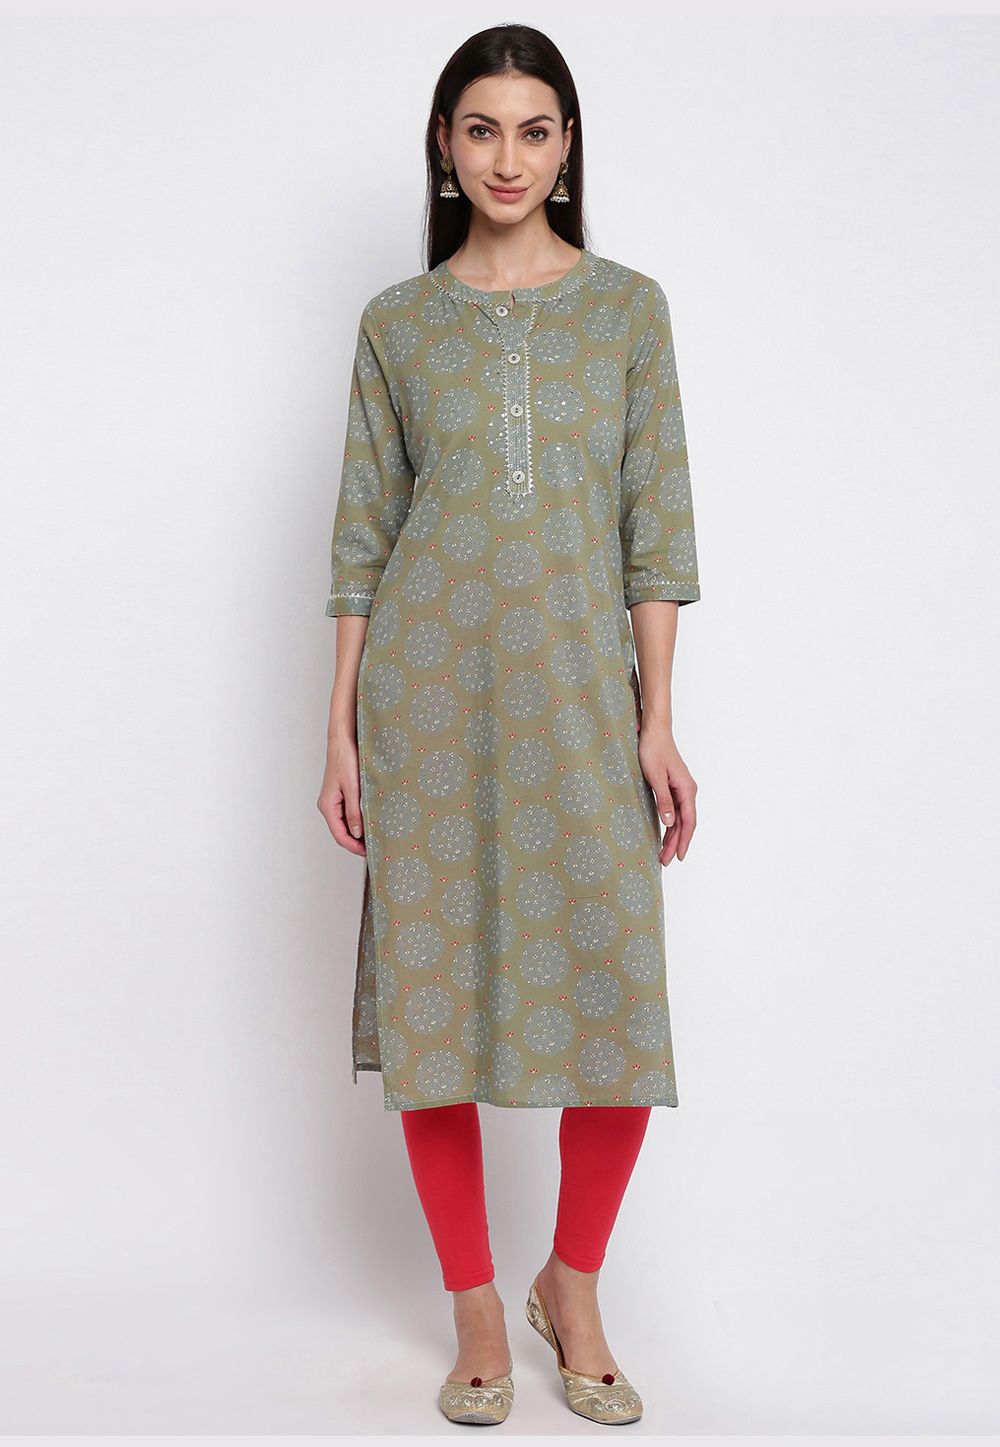 Olive Green Cotton Readymade Tunic 211641